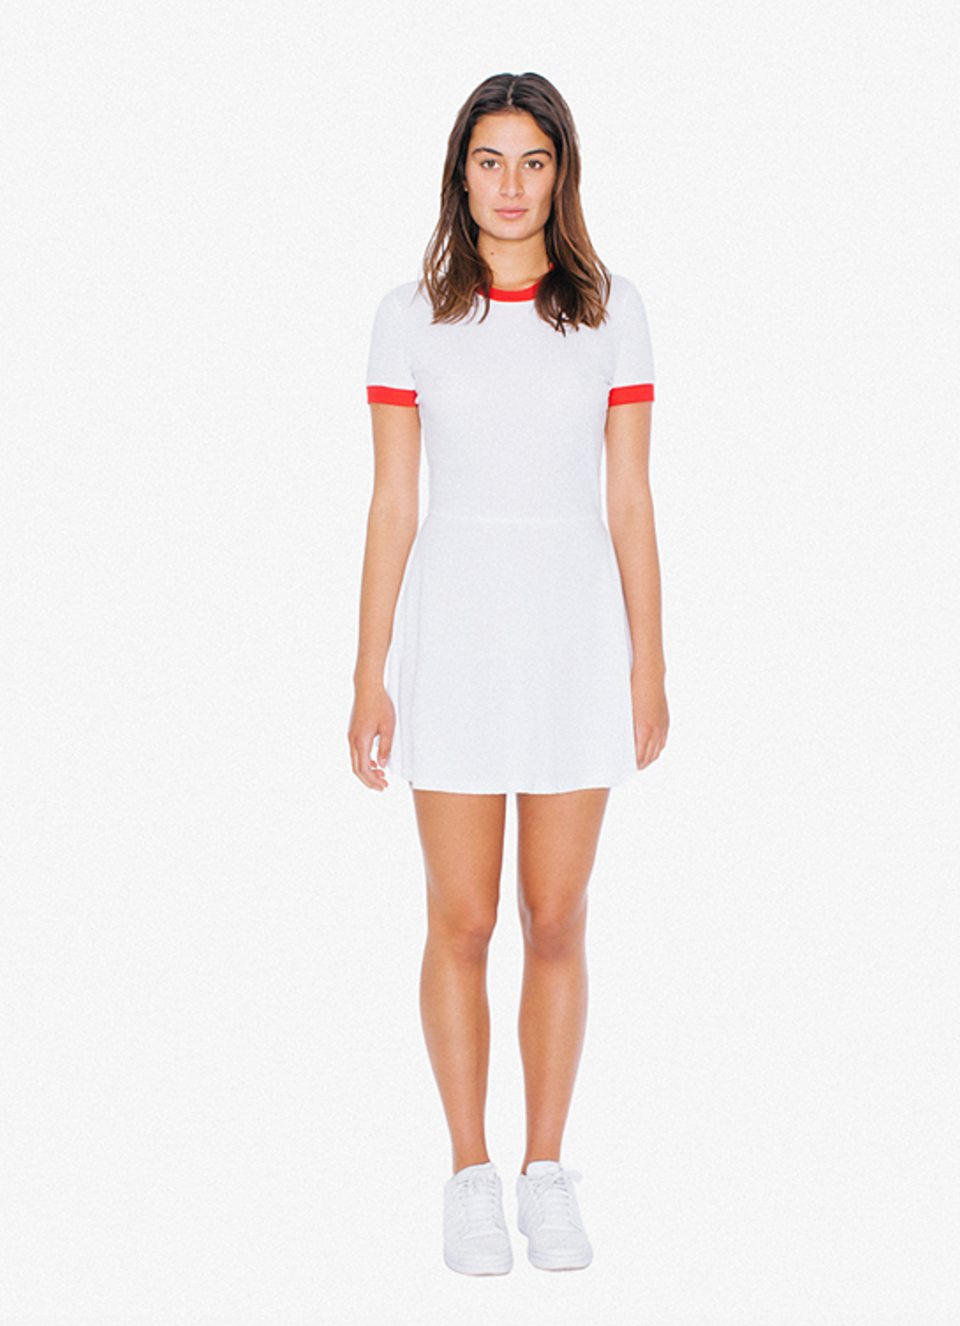 Ringer T-Shirt Dress $16 / I bought this as I need more golf outfits to wear